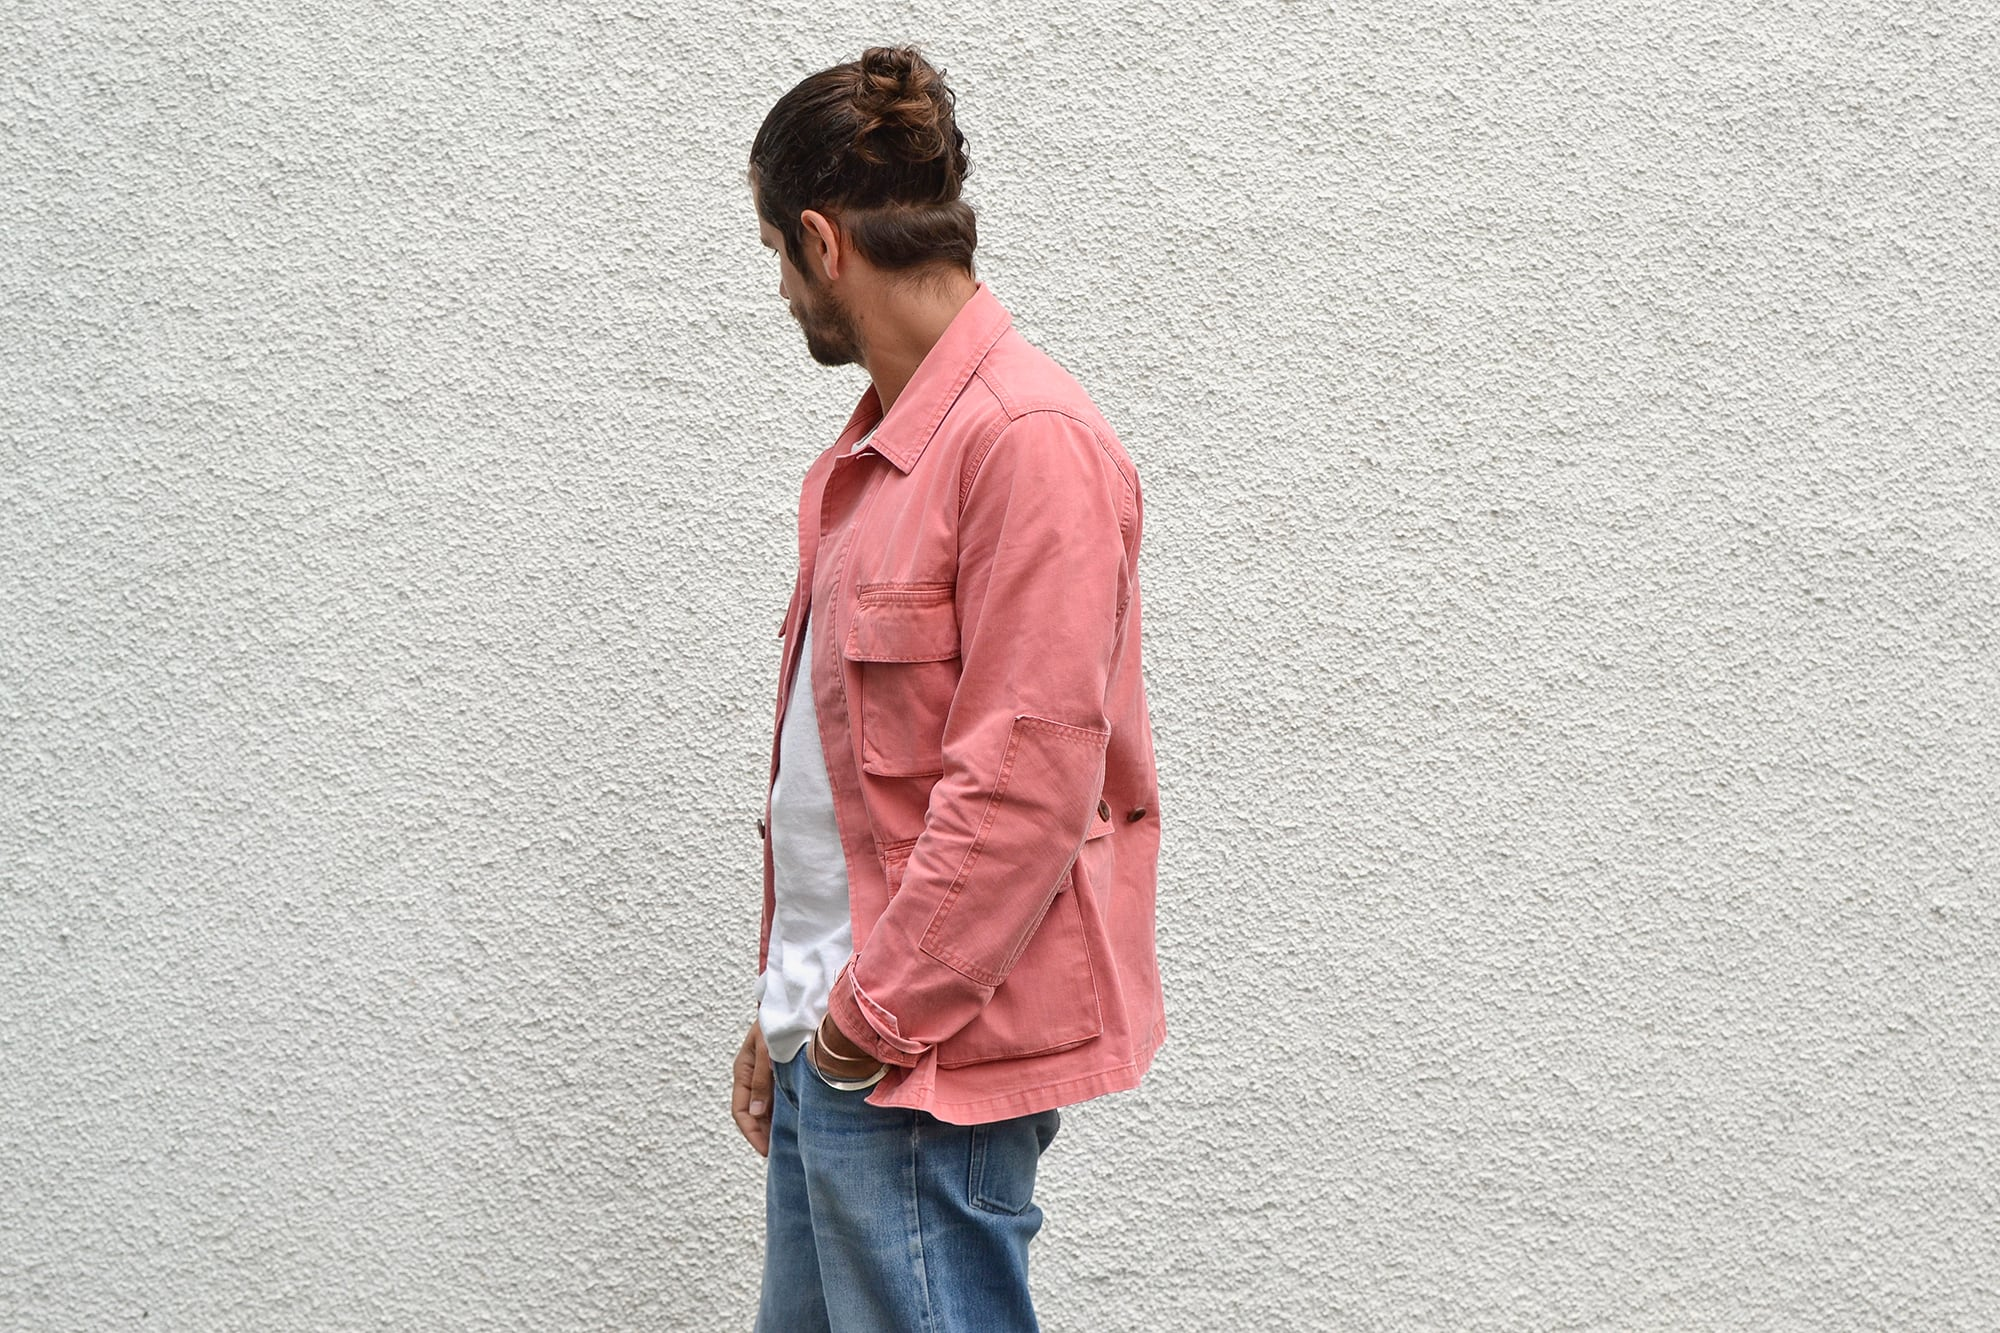 Visvim kilgore jacket salon pink SS 2012 and white tee with apc butler jeans